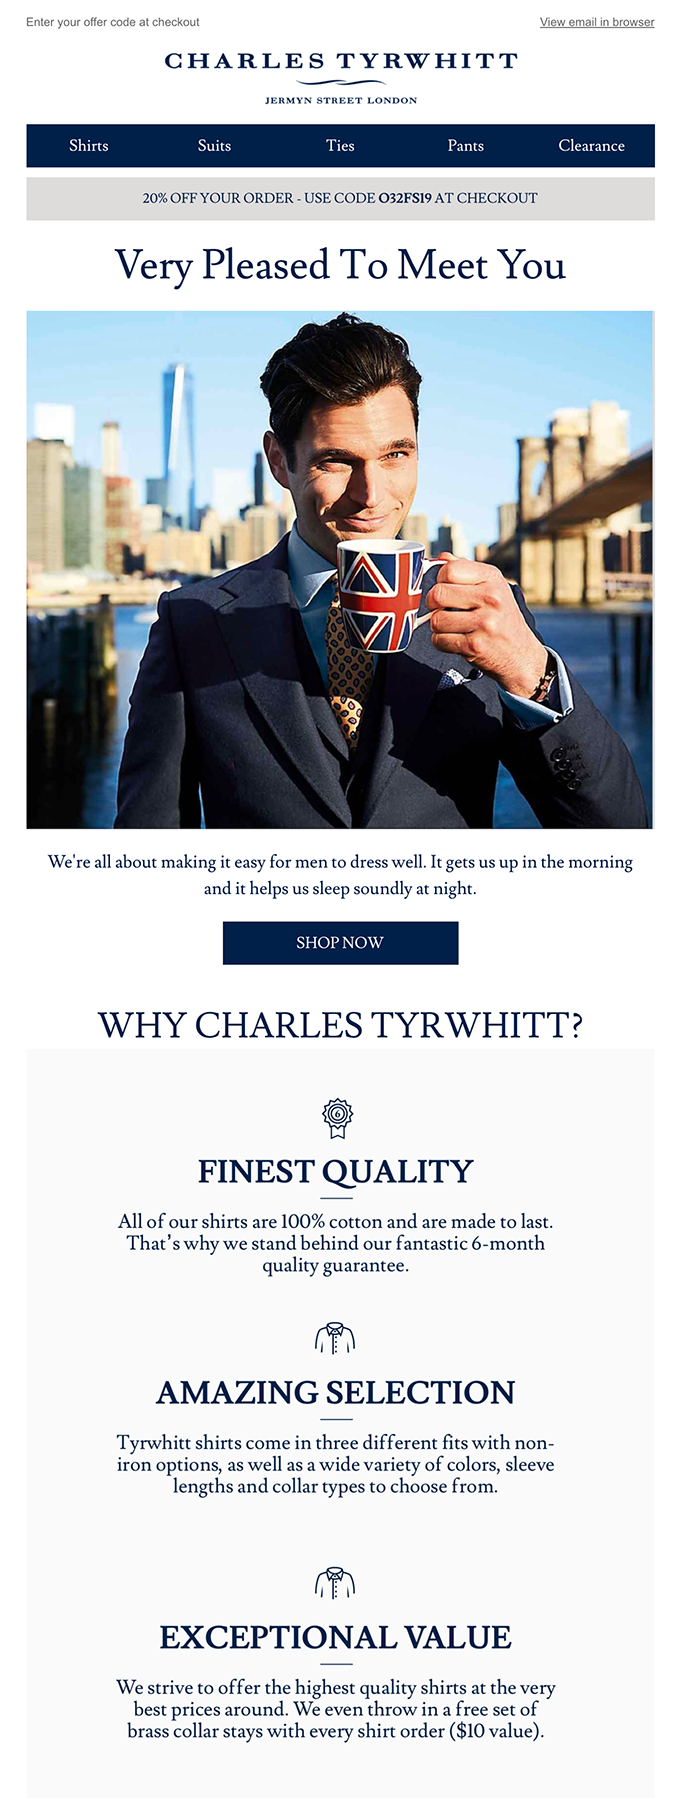 Example from Charles Tyrwhitt of a welcome email that shows the brand at its best by highlighting their USPs